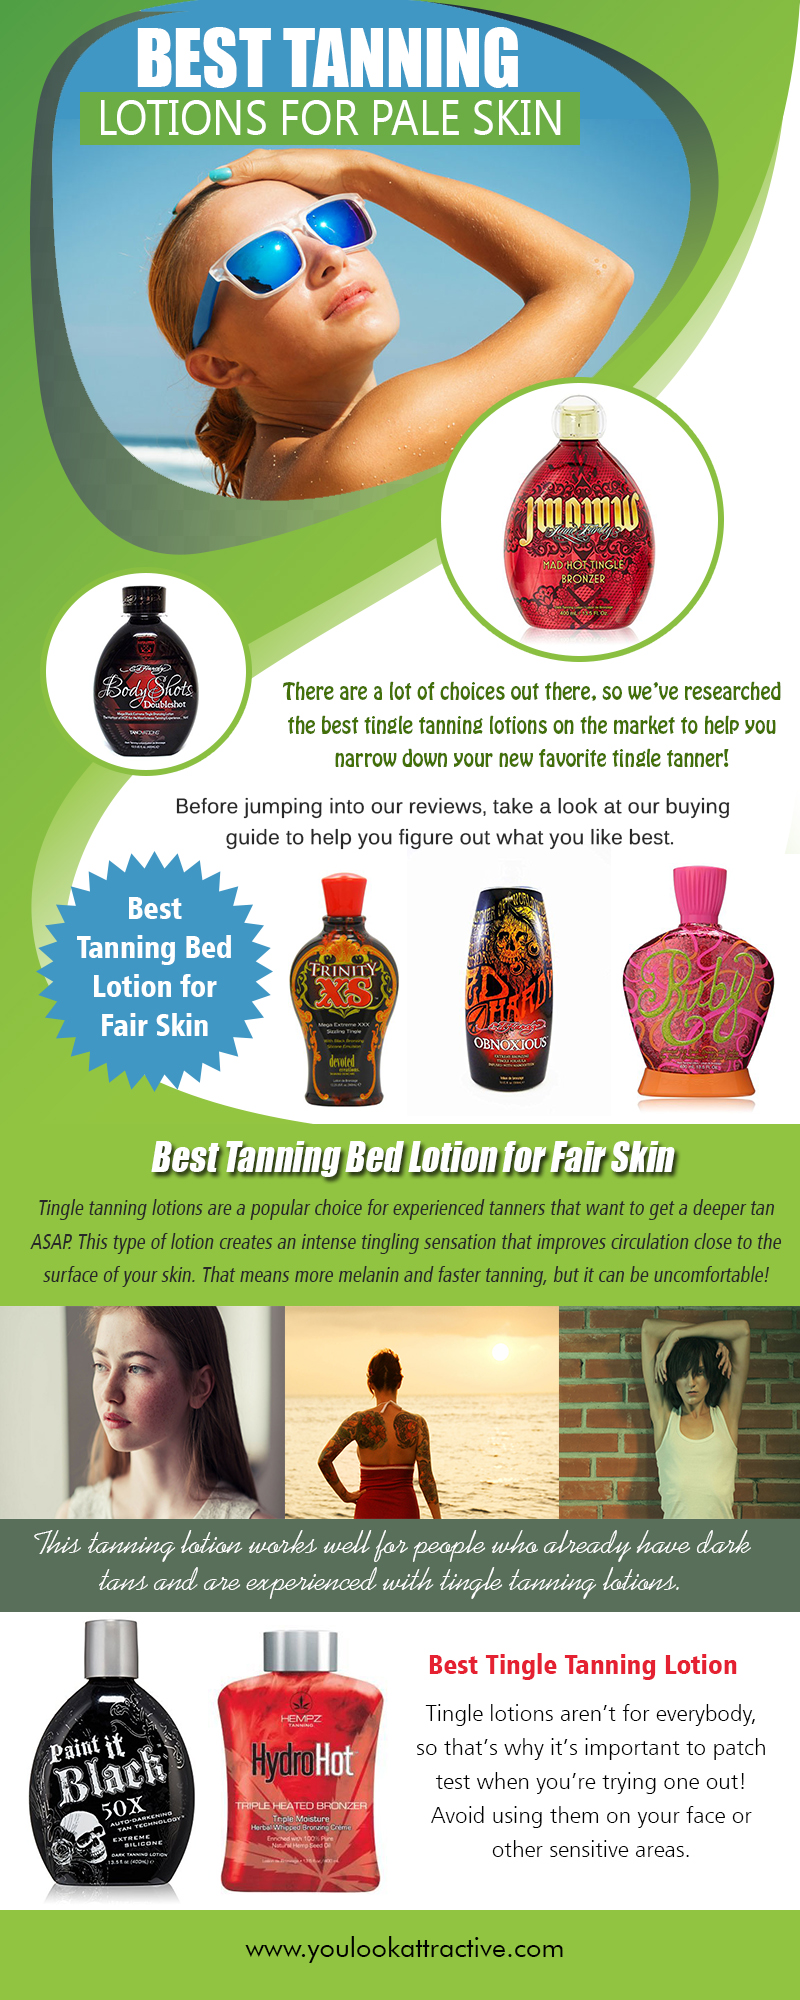 Best Tanning Lotions for Pale Skin